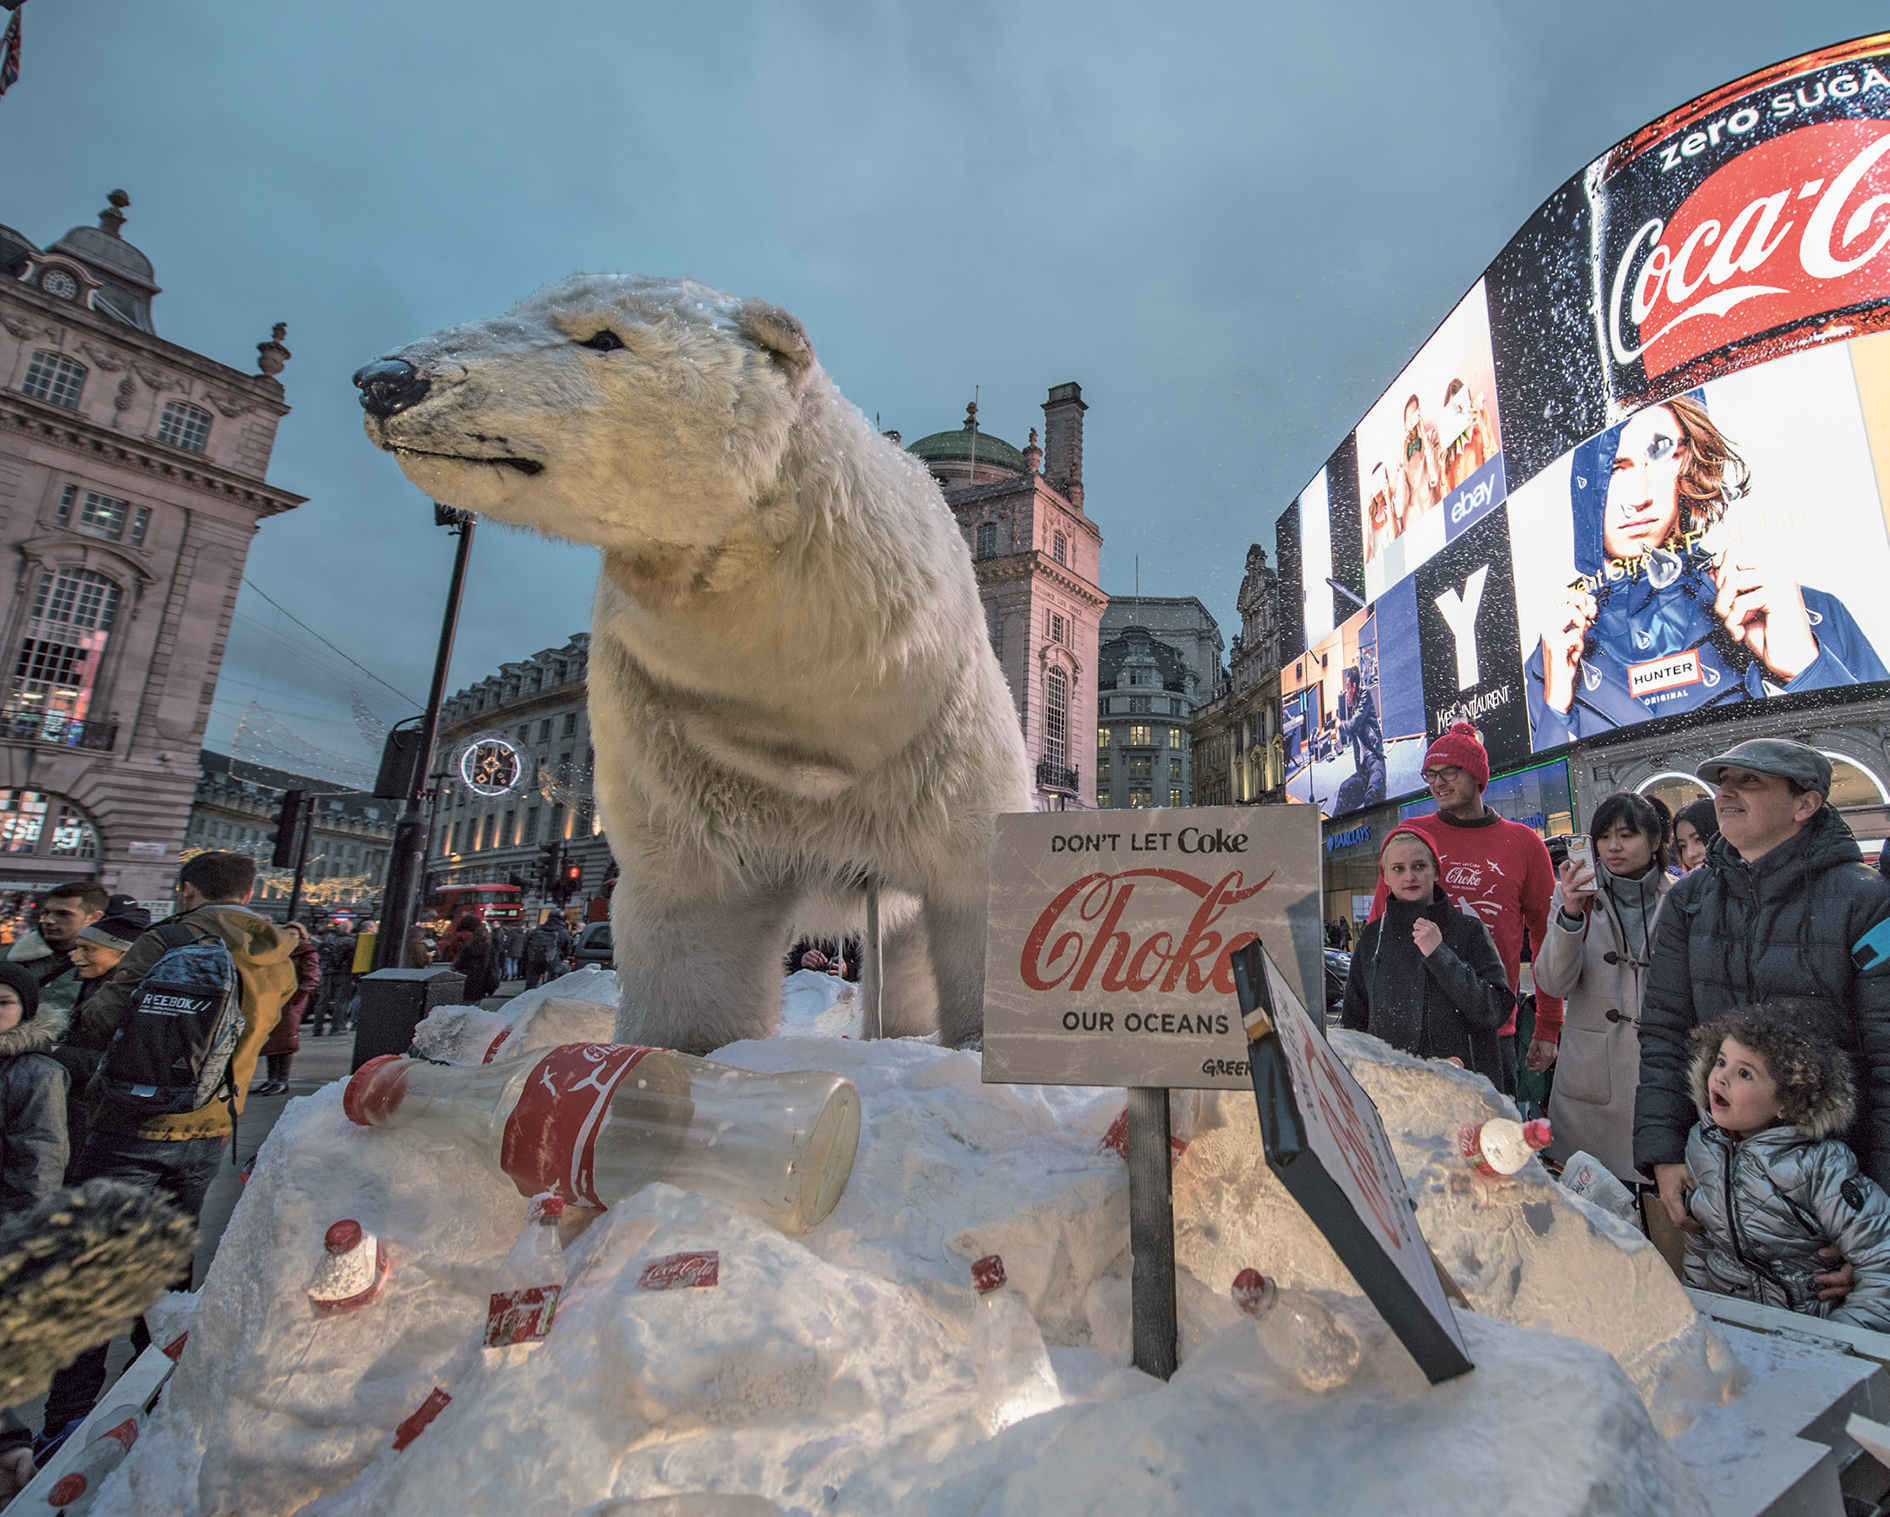 Paula, the lifesize Greenpeace polar bear puppet, shows up at Piccadilly Circus, London, to hijack Coke's advertising screen, December 2017. Coca-Cola has an enormous plastic footprint.